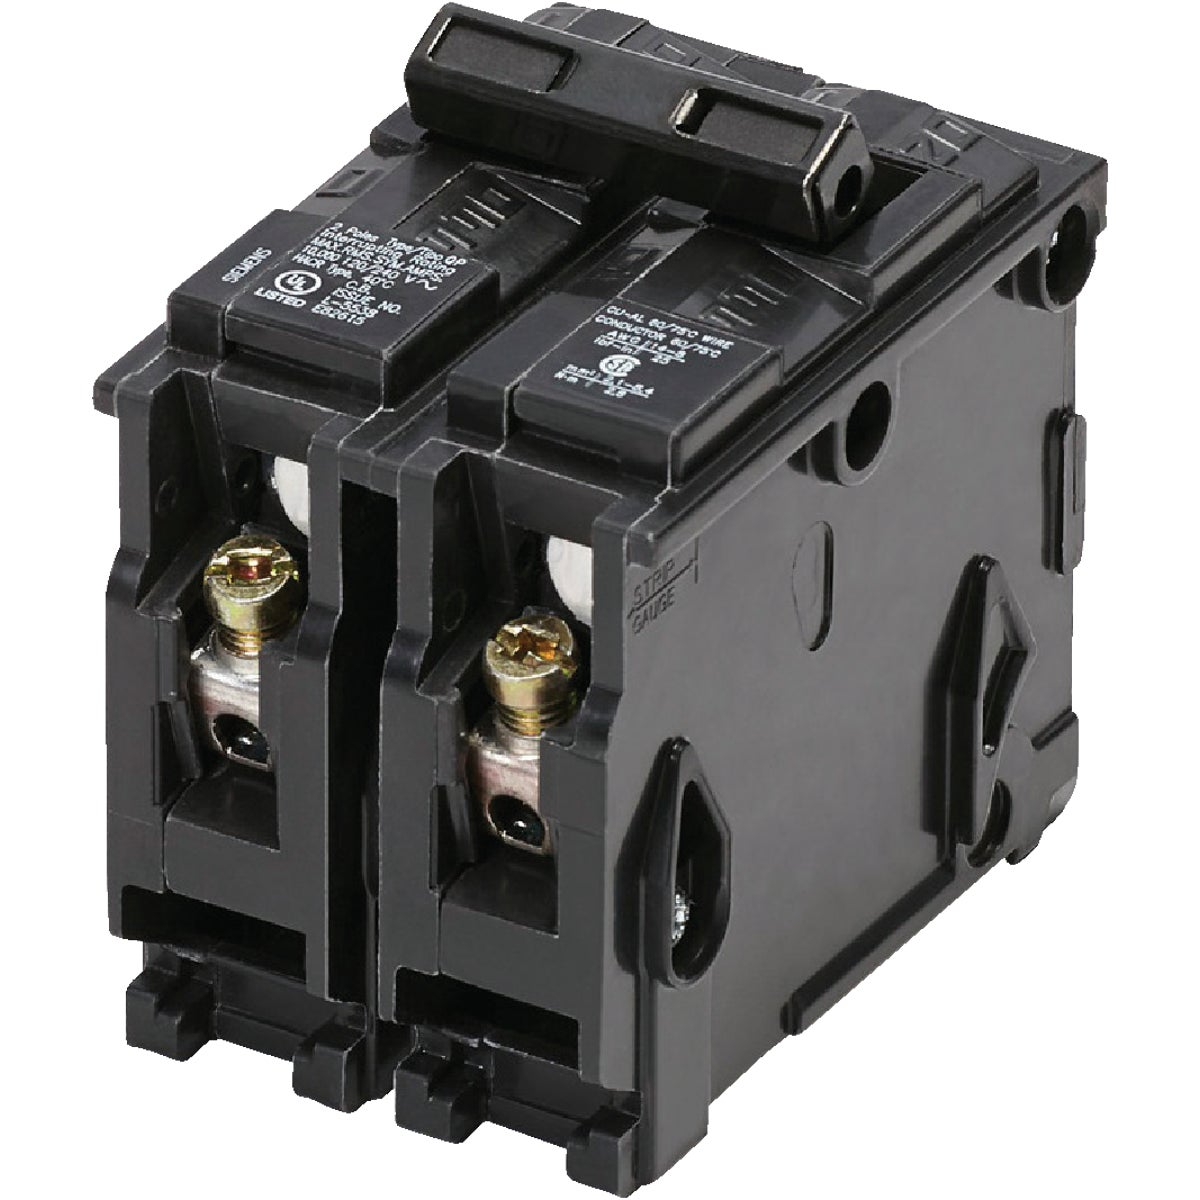 40A 2P CIRCUIT BREAKER - ICBQ240 by Connecticut Electric